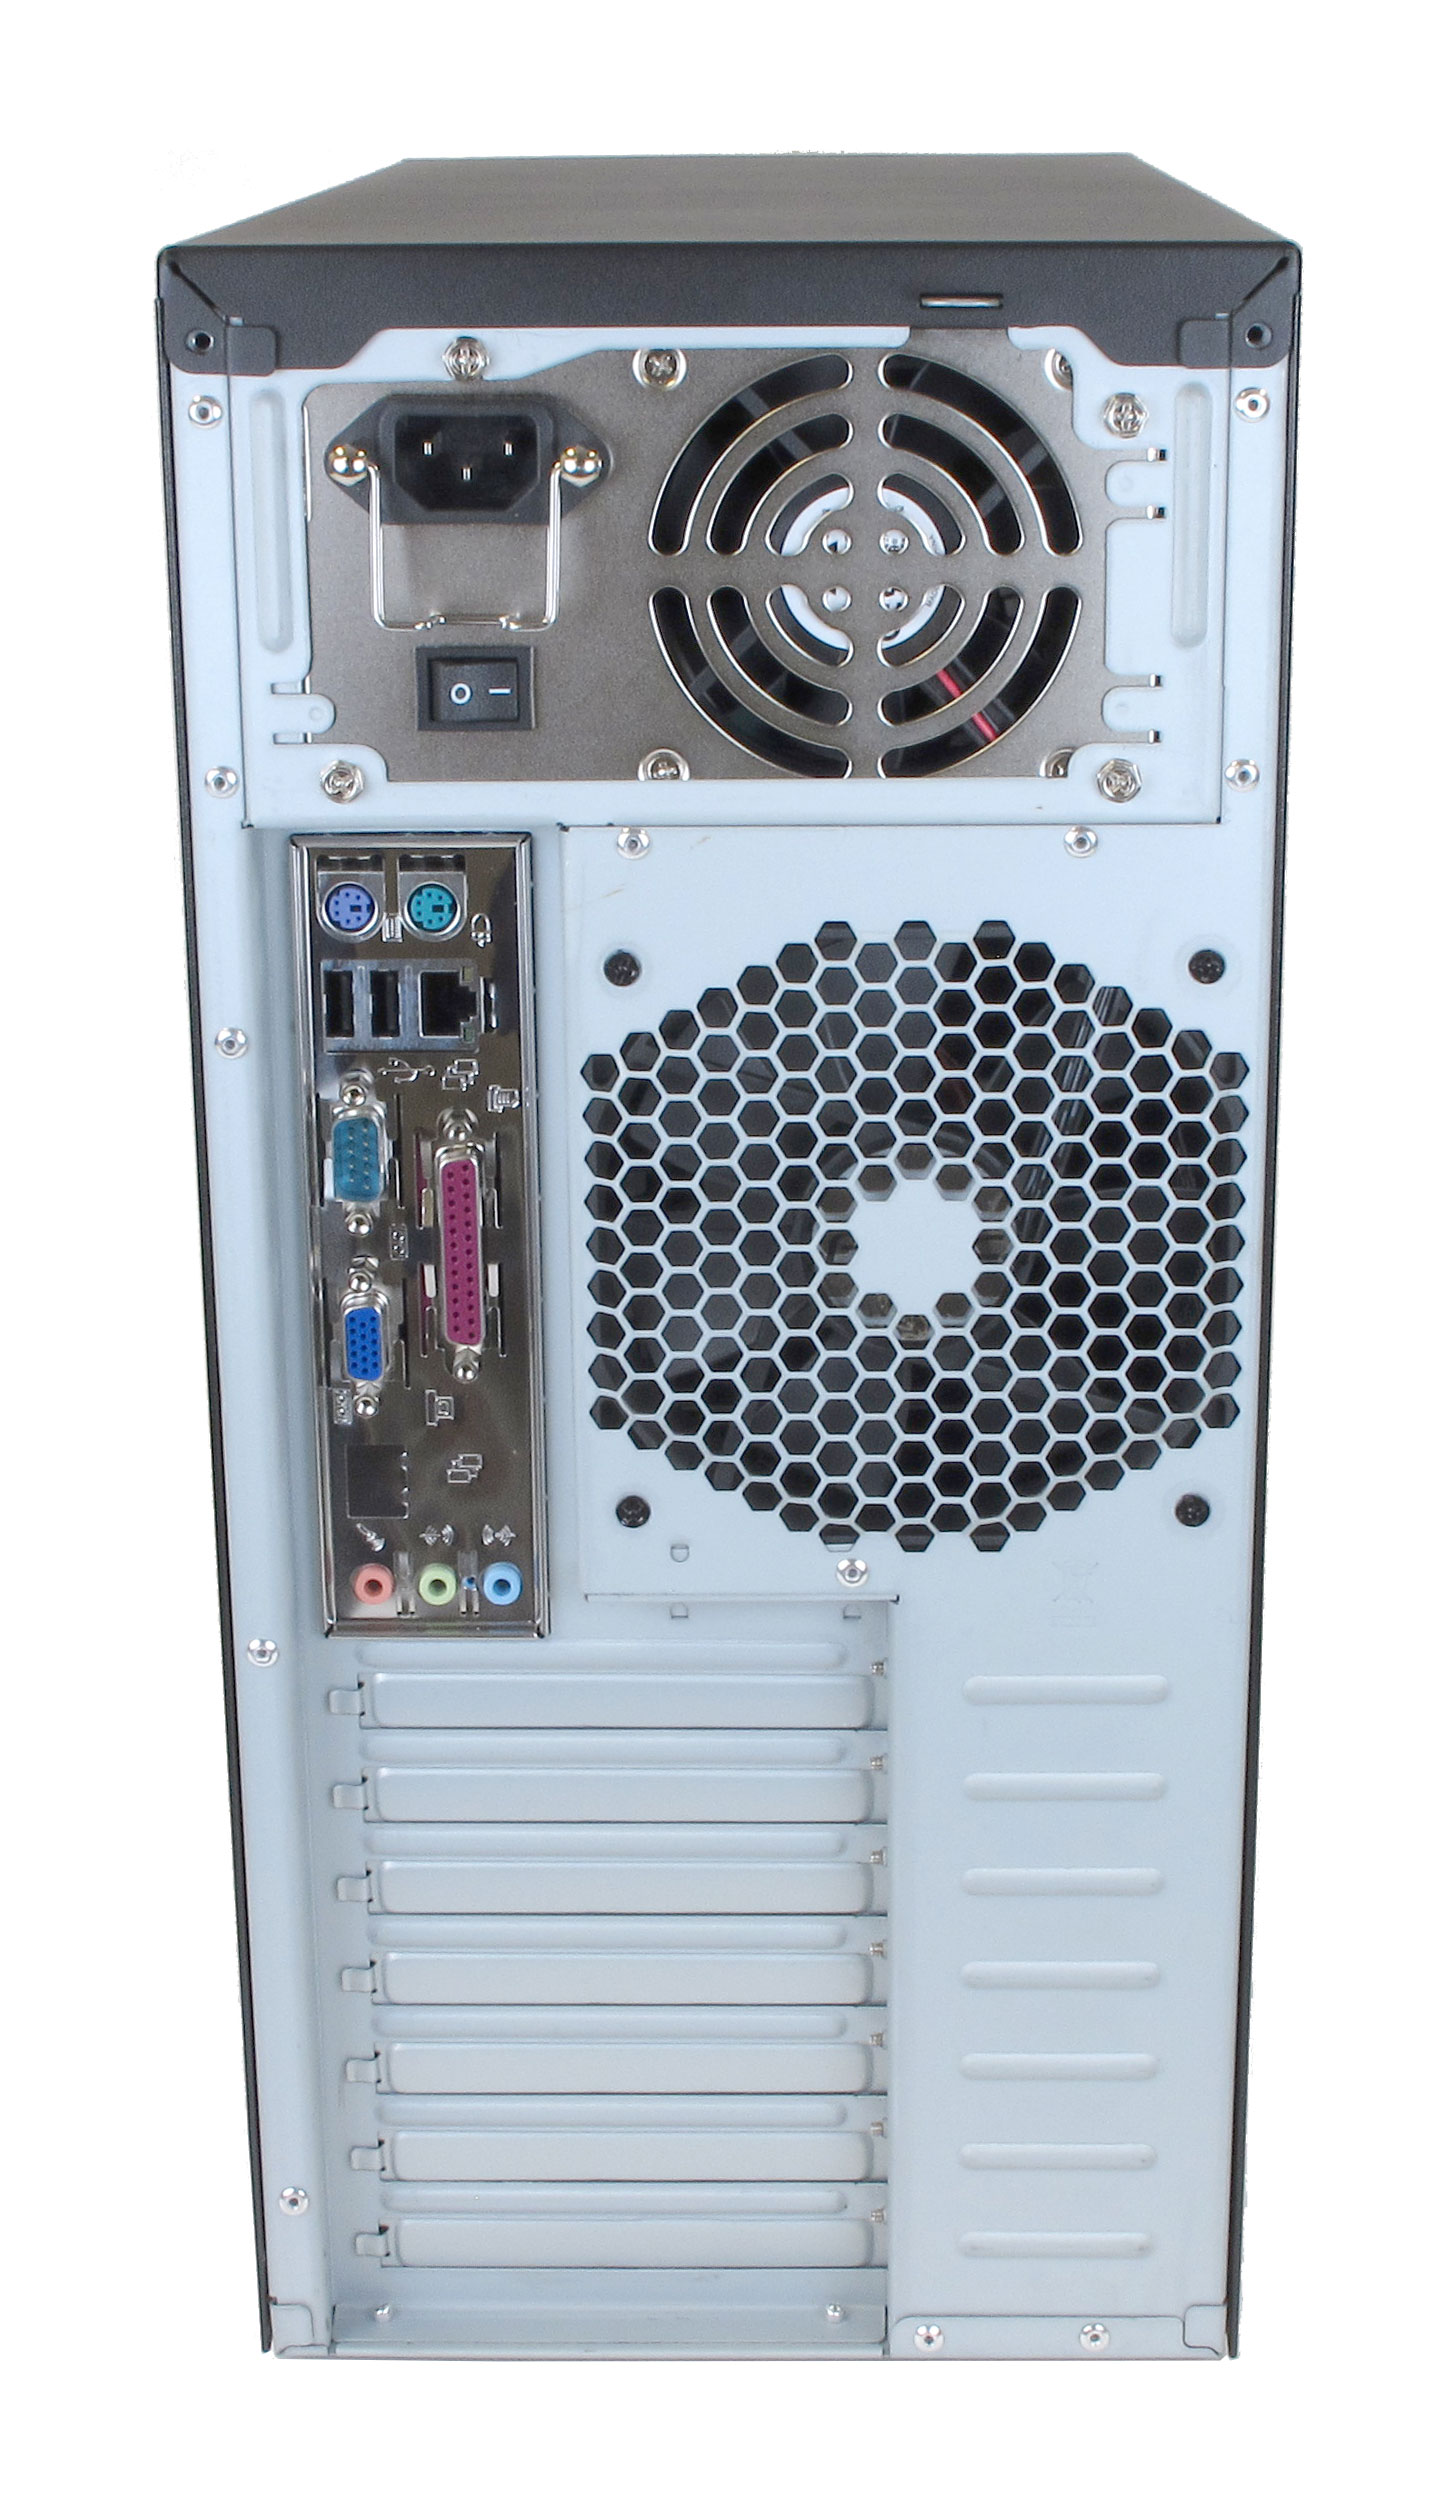 Mid-Tower Computer Rear